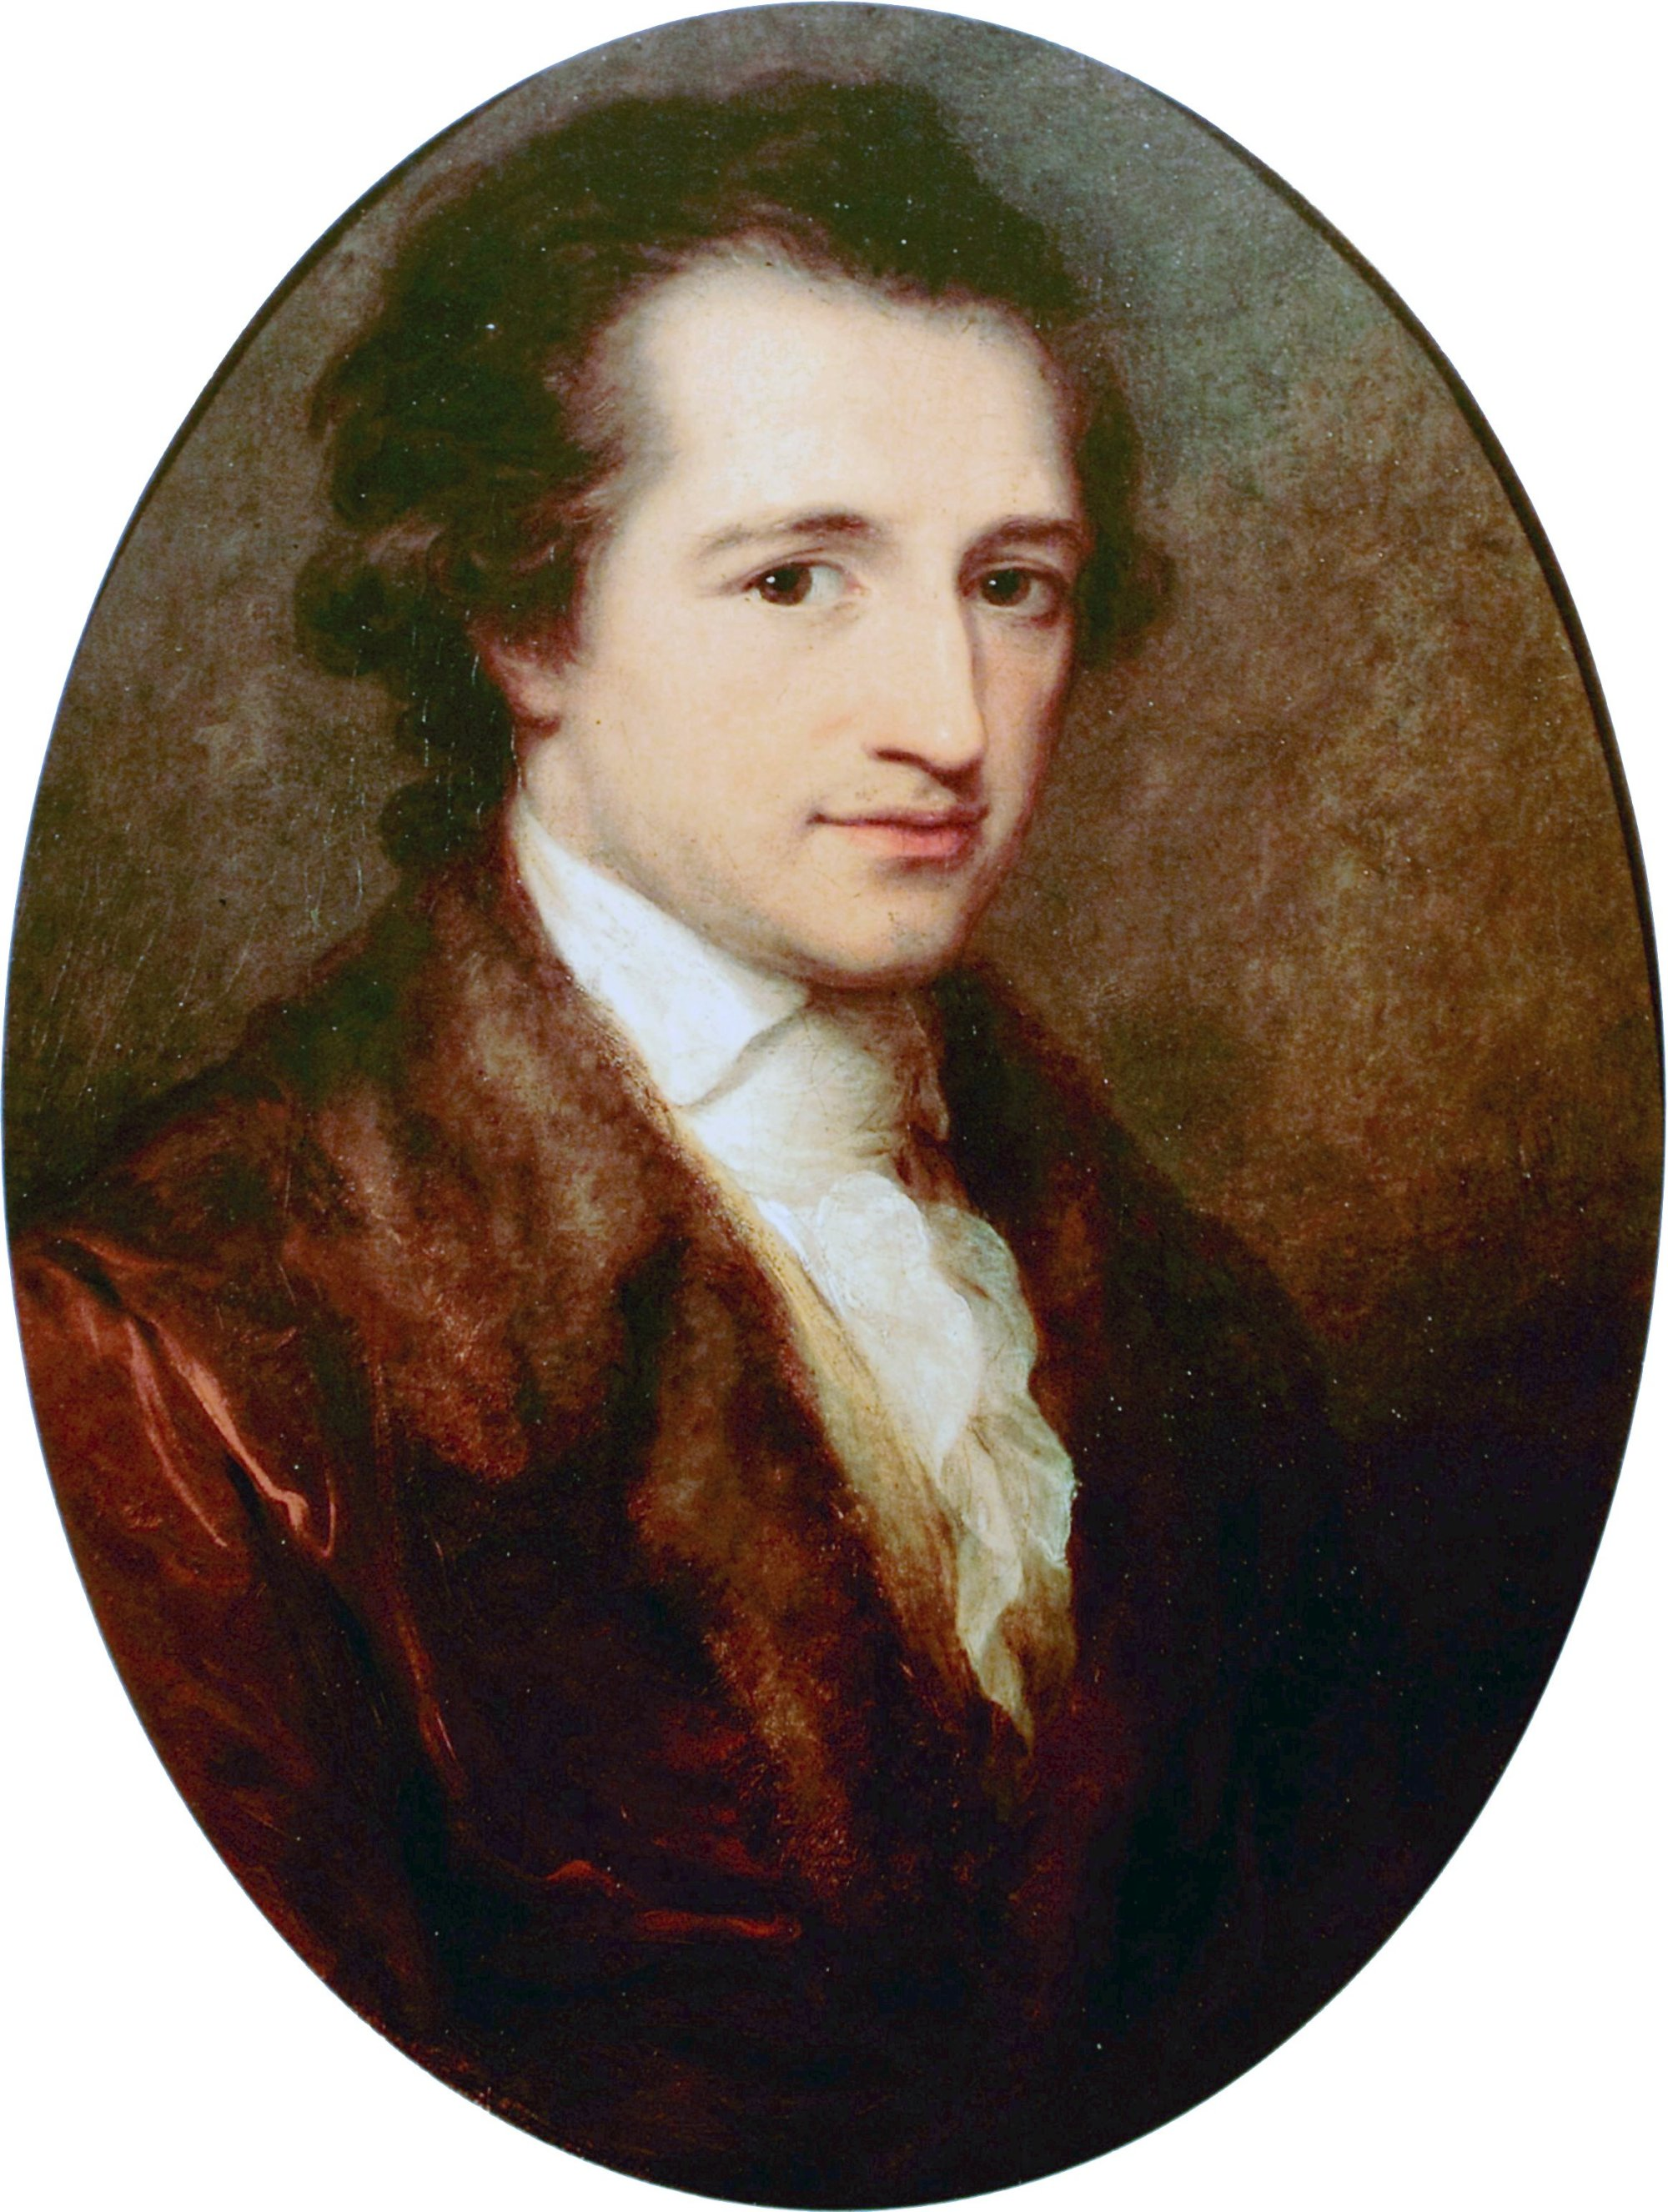 a biography of johann wolfgang von goethe A collection of quotes and sayings by johann wolfgang von goethe on books, poems, faust, german, dreams, biography, boldness, power, genius, magic, alone.